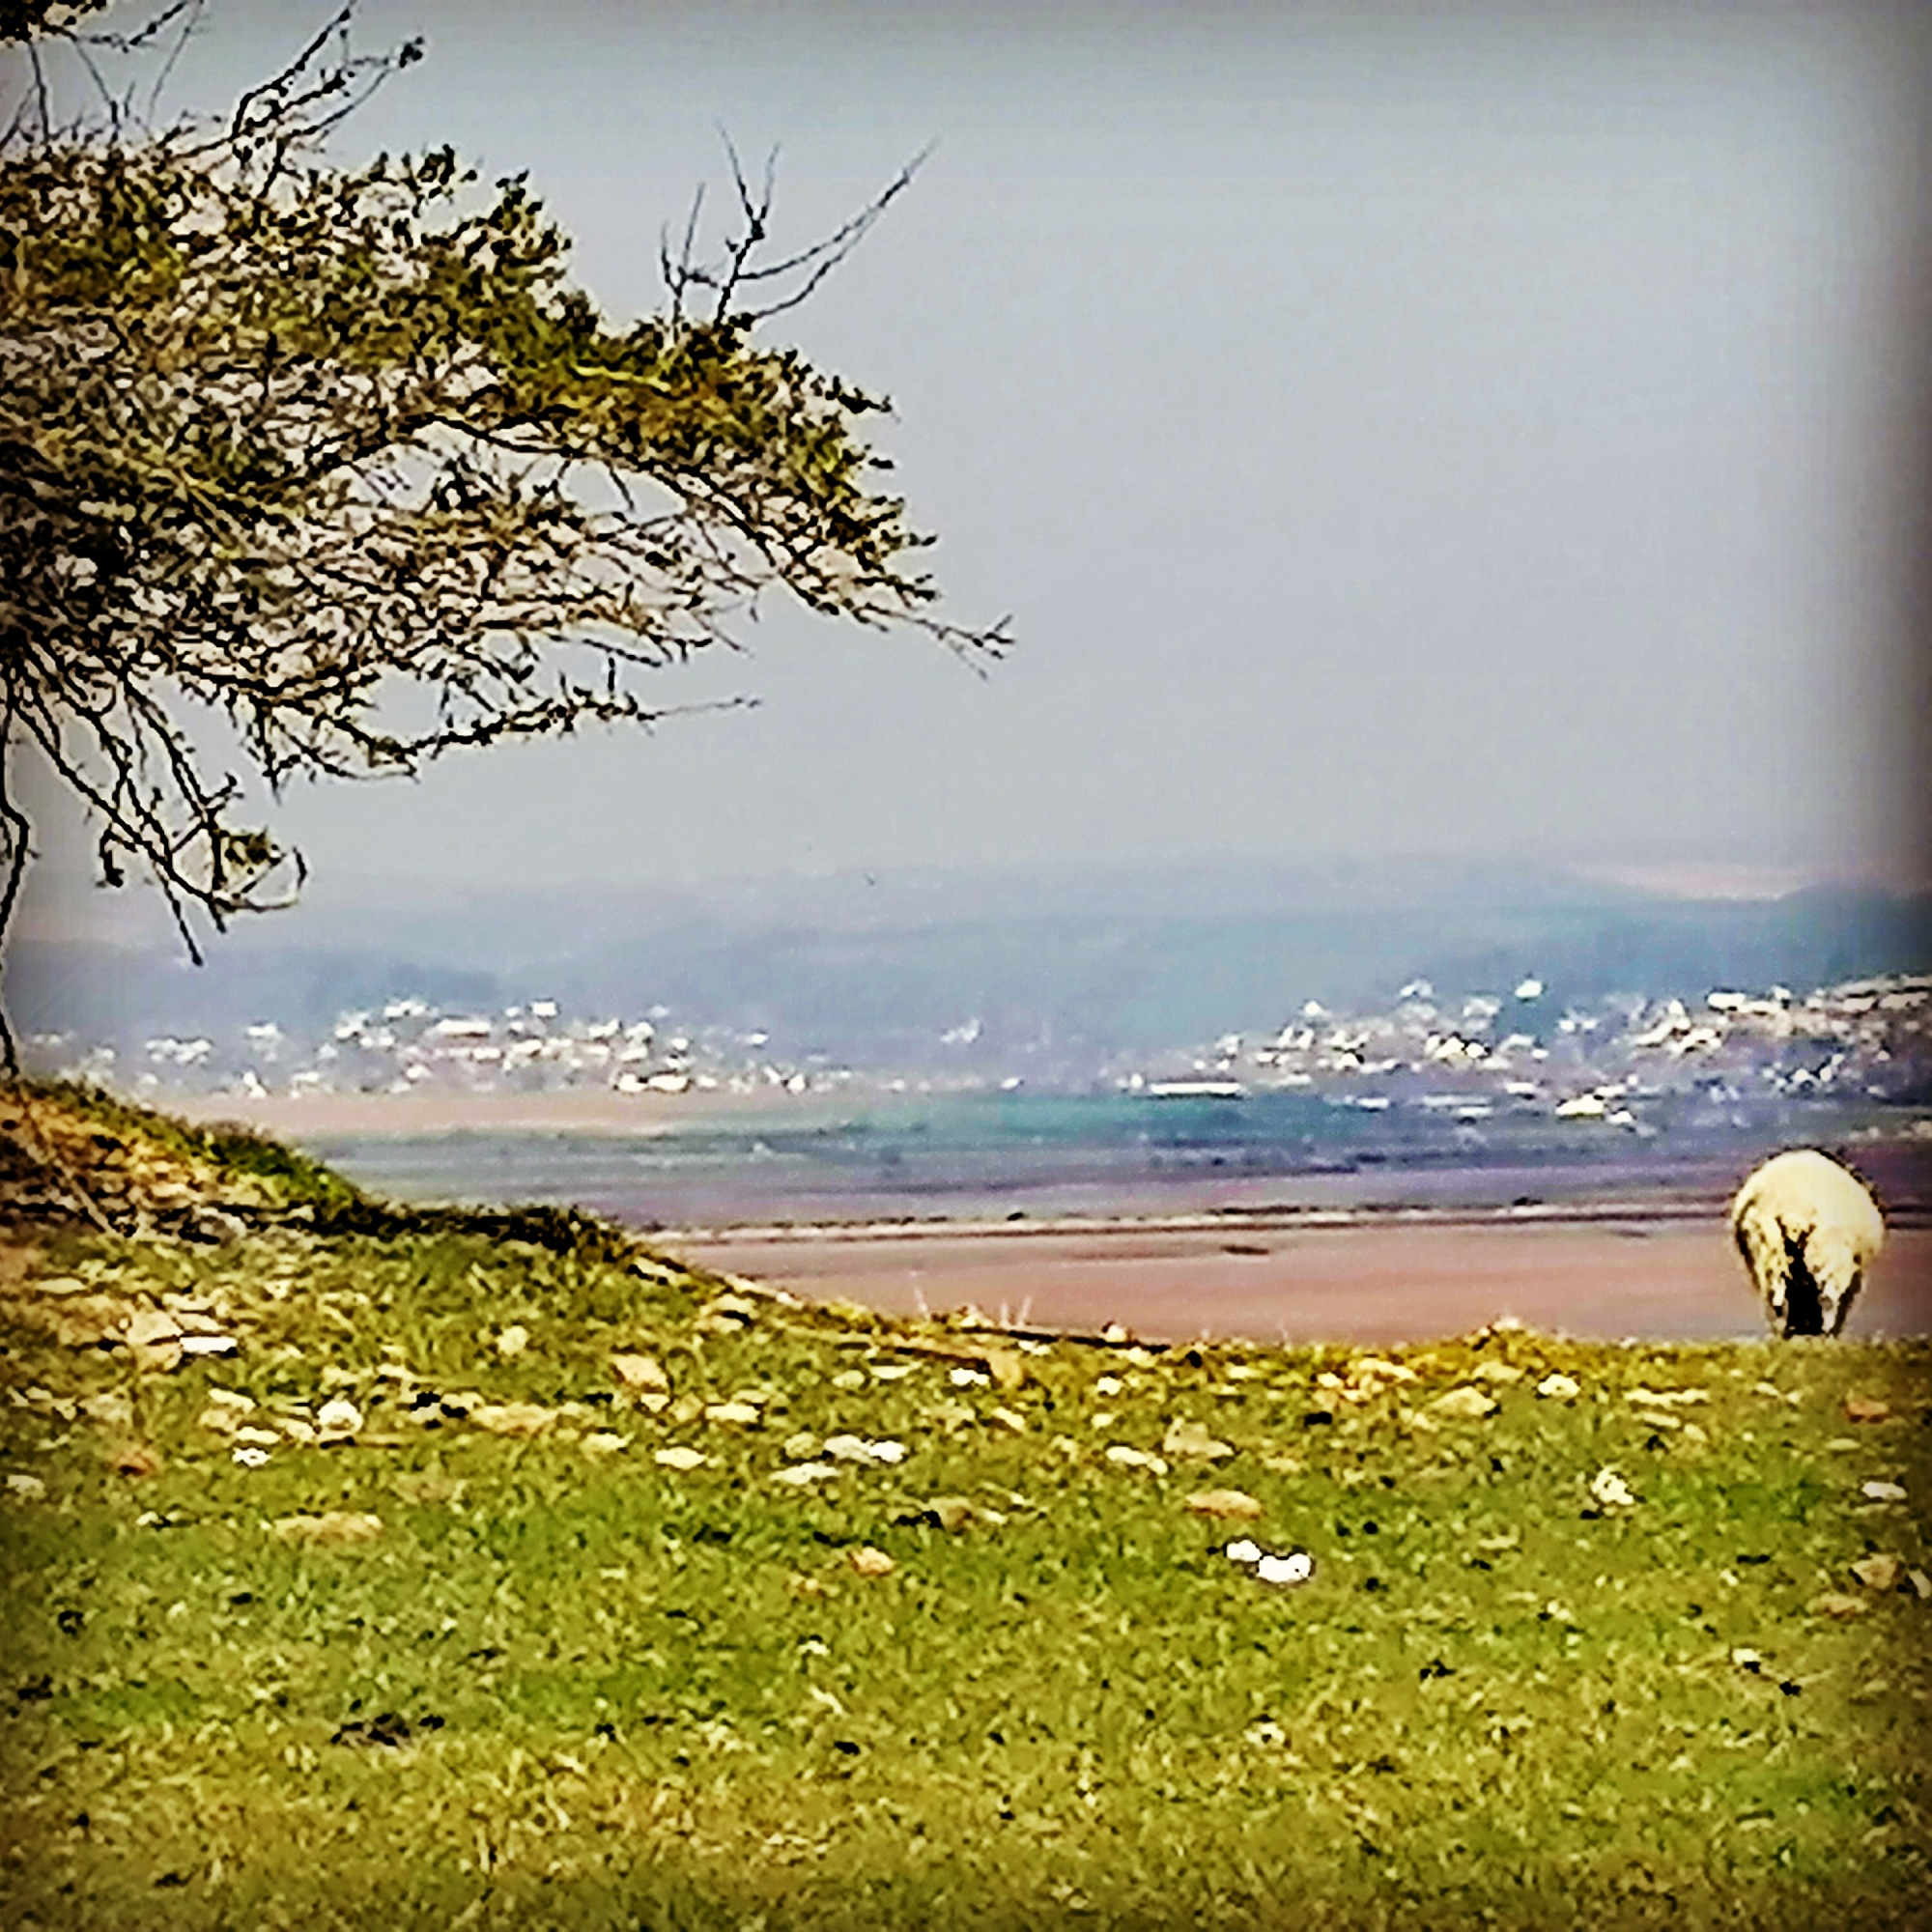 sheep, coastline, crags, estuaries, sea views,